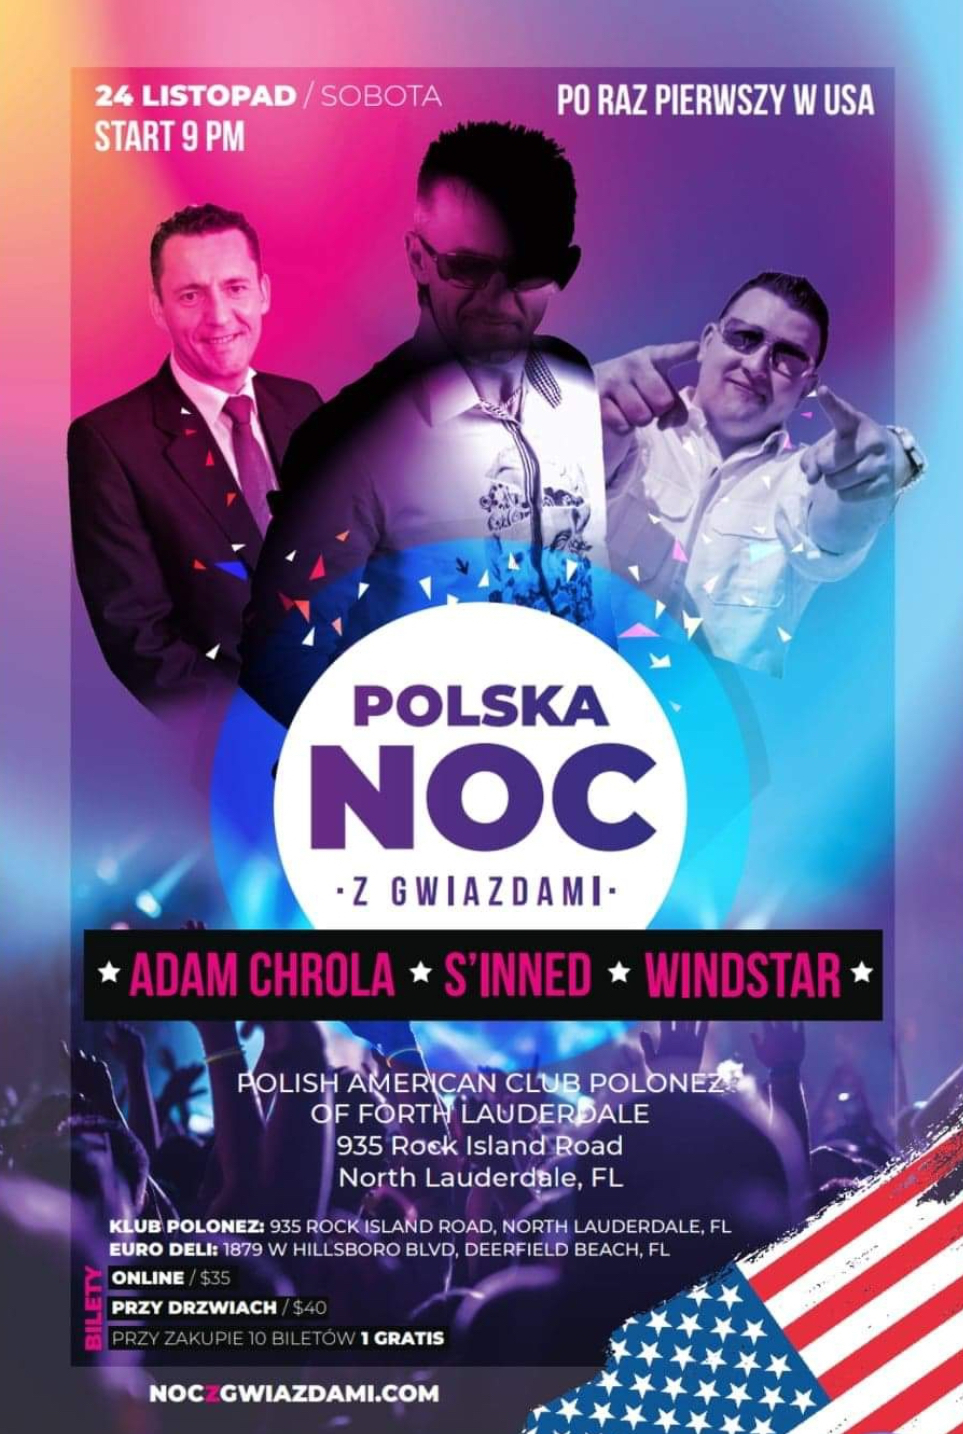 noczgwiazdami.com Koncert - Polska Noc z Gwiazdami (Concert - Polish Night with Stars) What: Koncert (Concert) Who is performing: Występują (performing) Adam Chrola, S'Inned, Windstar When: 24 listopad / sobota godz. 9 (November 24, Saturday at 9 pm) Where: Polsko-Amerykański Klub Polonez w Fort Lauderdale (Polish American Club Polonez of Fort Lauderdale) Cost: Bilety (tickets): online $35 ; przy drzwiach (at the door) $ 40. Przy zakupie 10 biletów 1 gratis ( buy 10 tickets and get 1 free) Performers: Adam Chrola, S'Inned, Windstar Meta tags: koncert, polski, muzyka, polska noc z gwiazdami, polska, noc, z, gwiazdami, bilety, rozrywka, adam chrola, S'inned, windstar, mr. Sebii